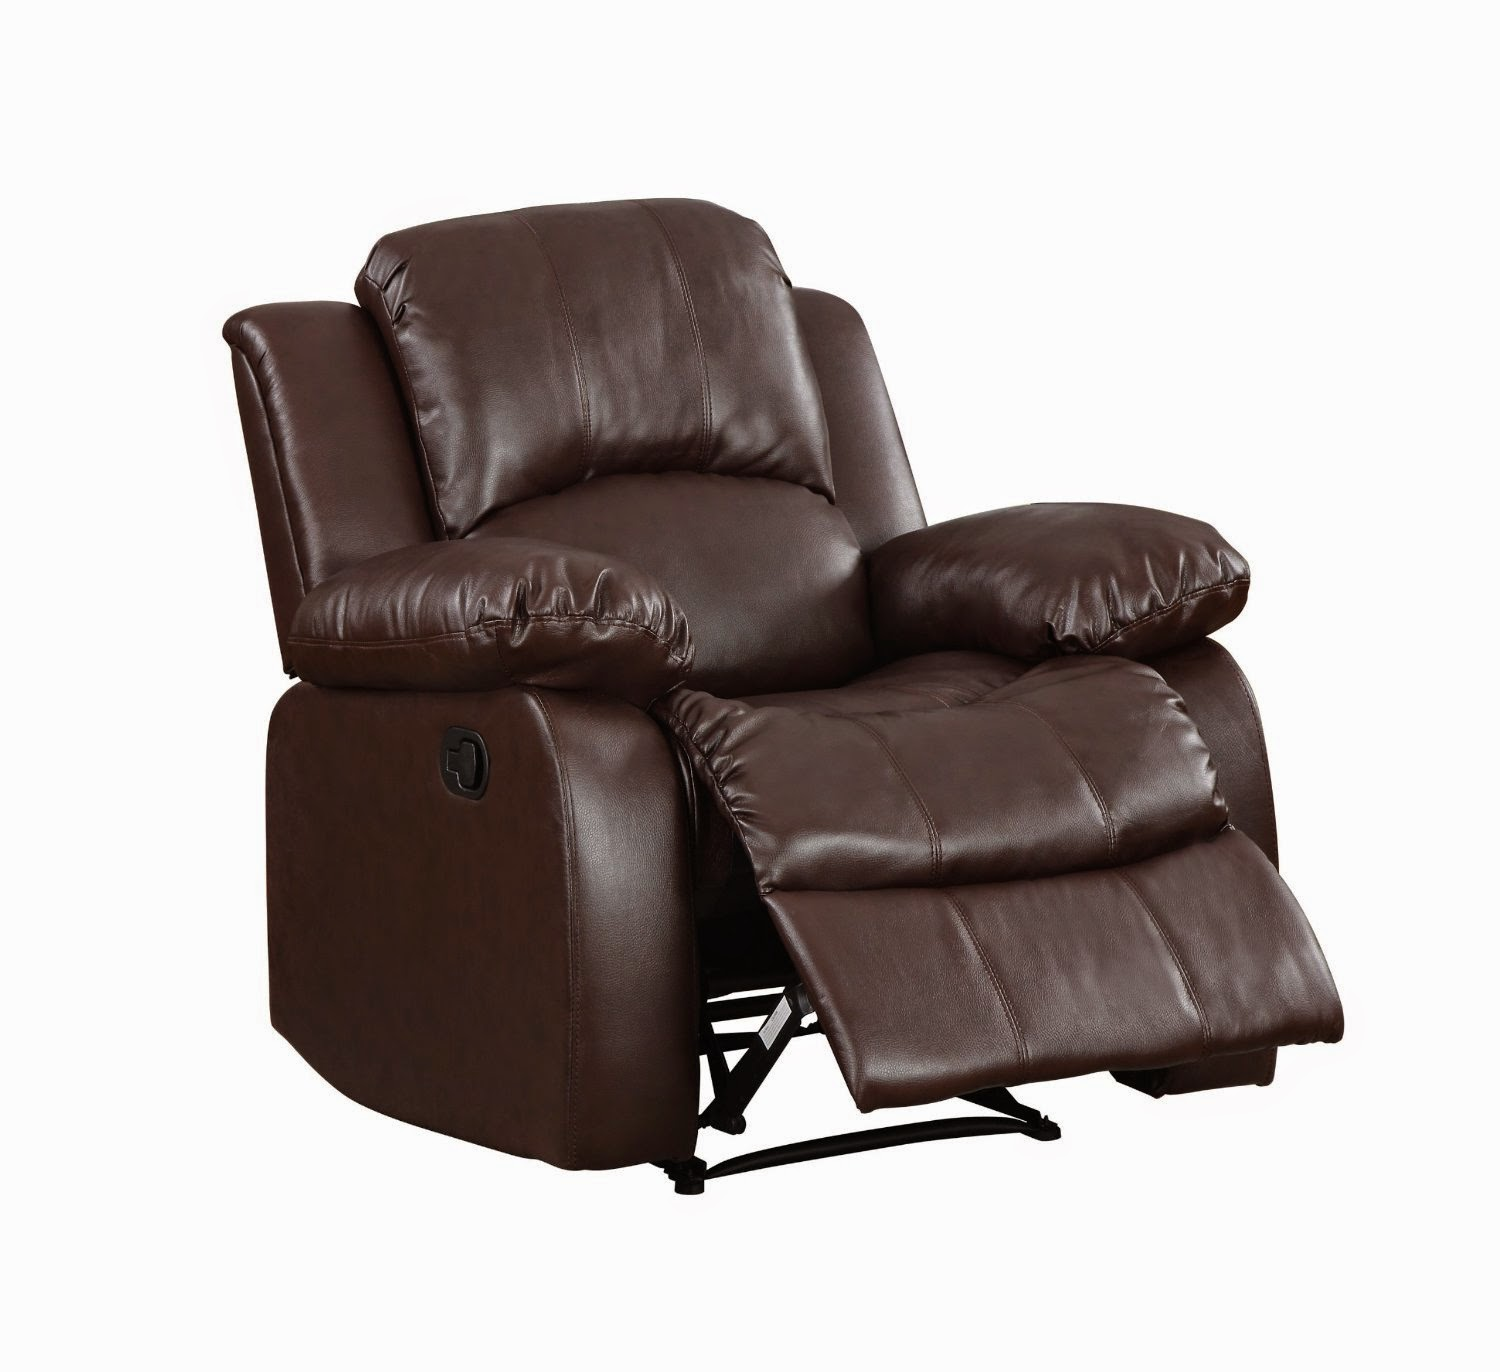 Costco Recliner Chair Cheap Reclining Sofas Sale Leather Reclining Sofa Costco